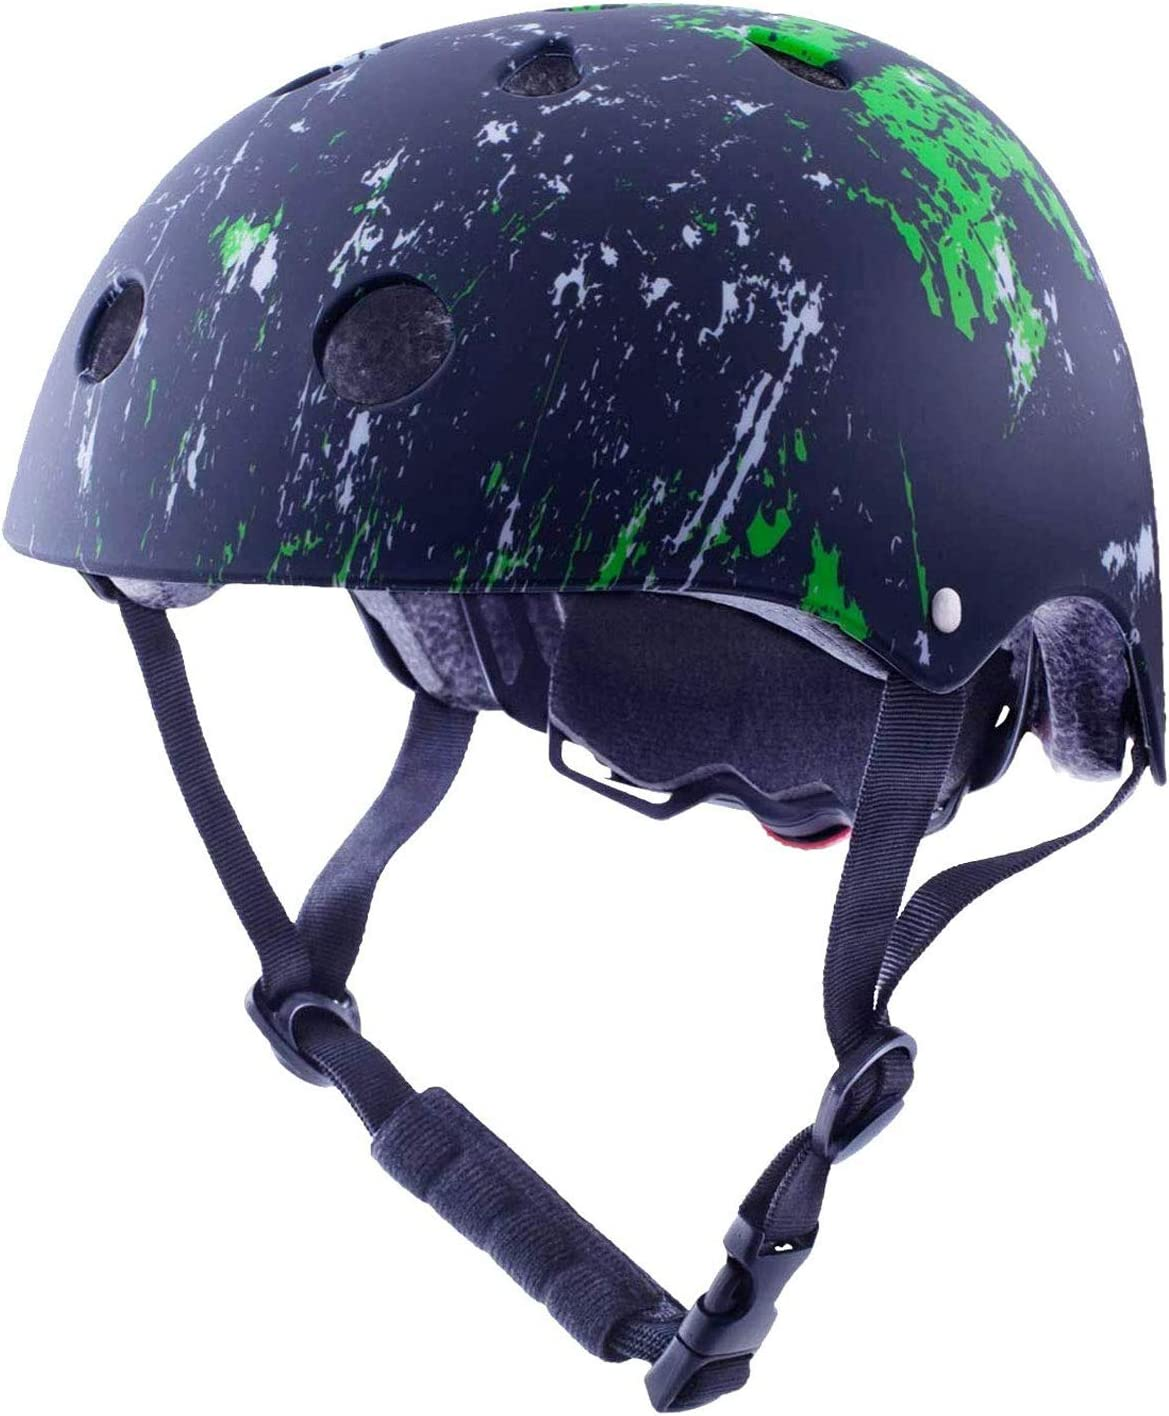 CE Certificated Bike Bicycle Skate Helmet Multi-Sports Scooter Skater Bmx Cycle